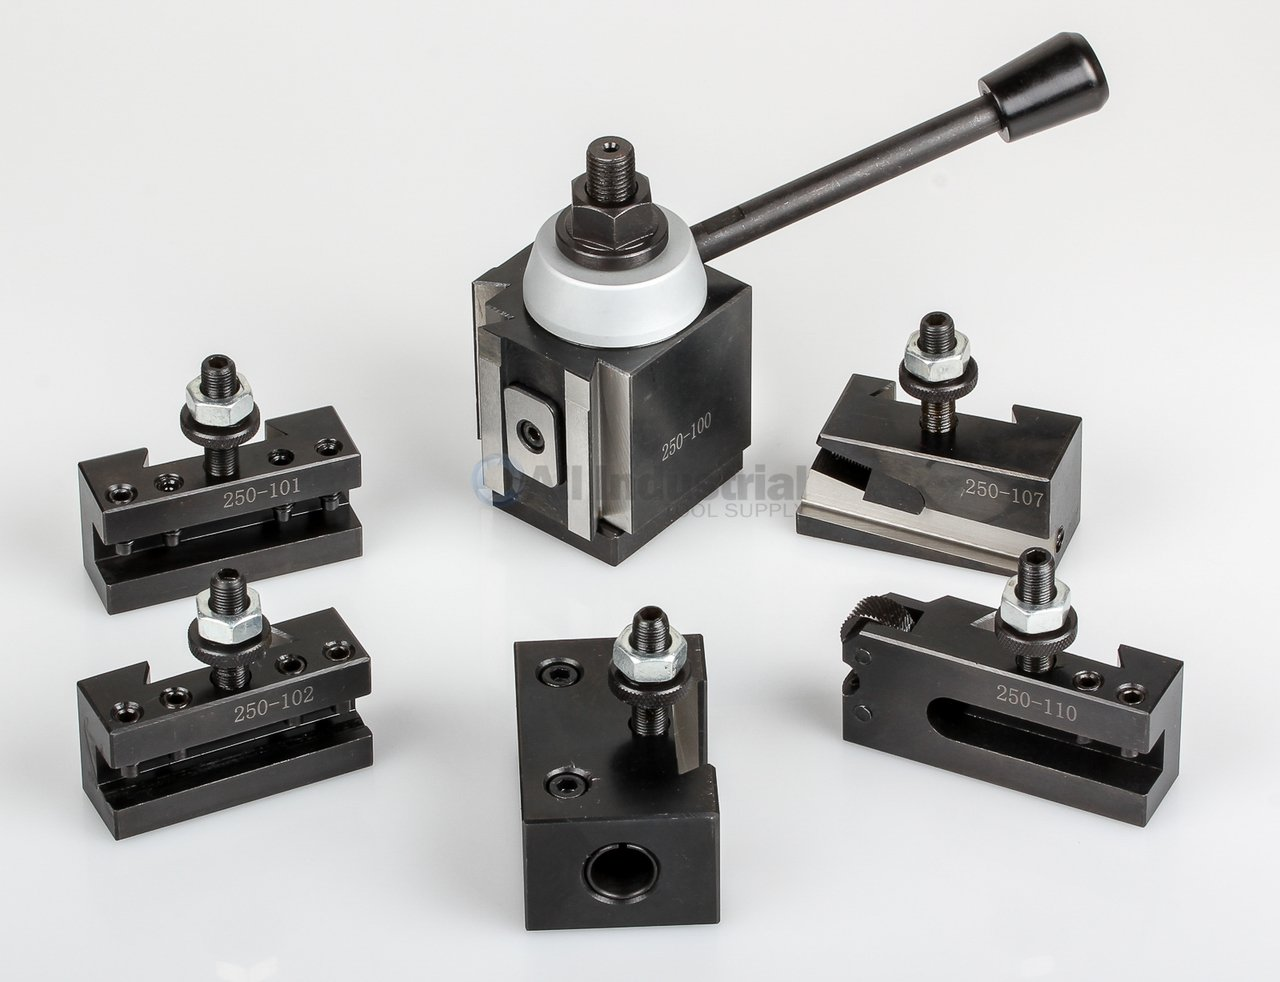 AXA Piston Tool Post Set CNC High Precision Quick Change Lathe Holder 100 Series by All Industrial